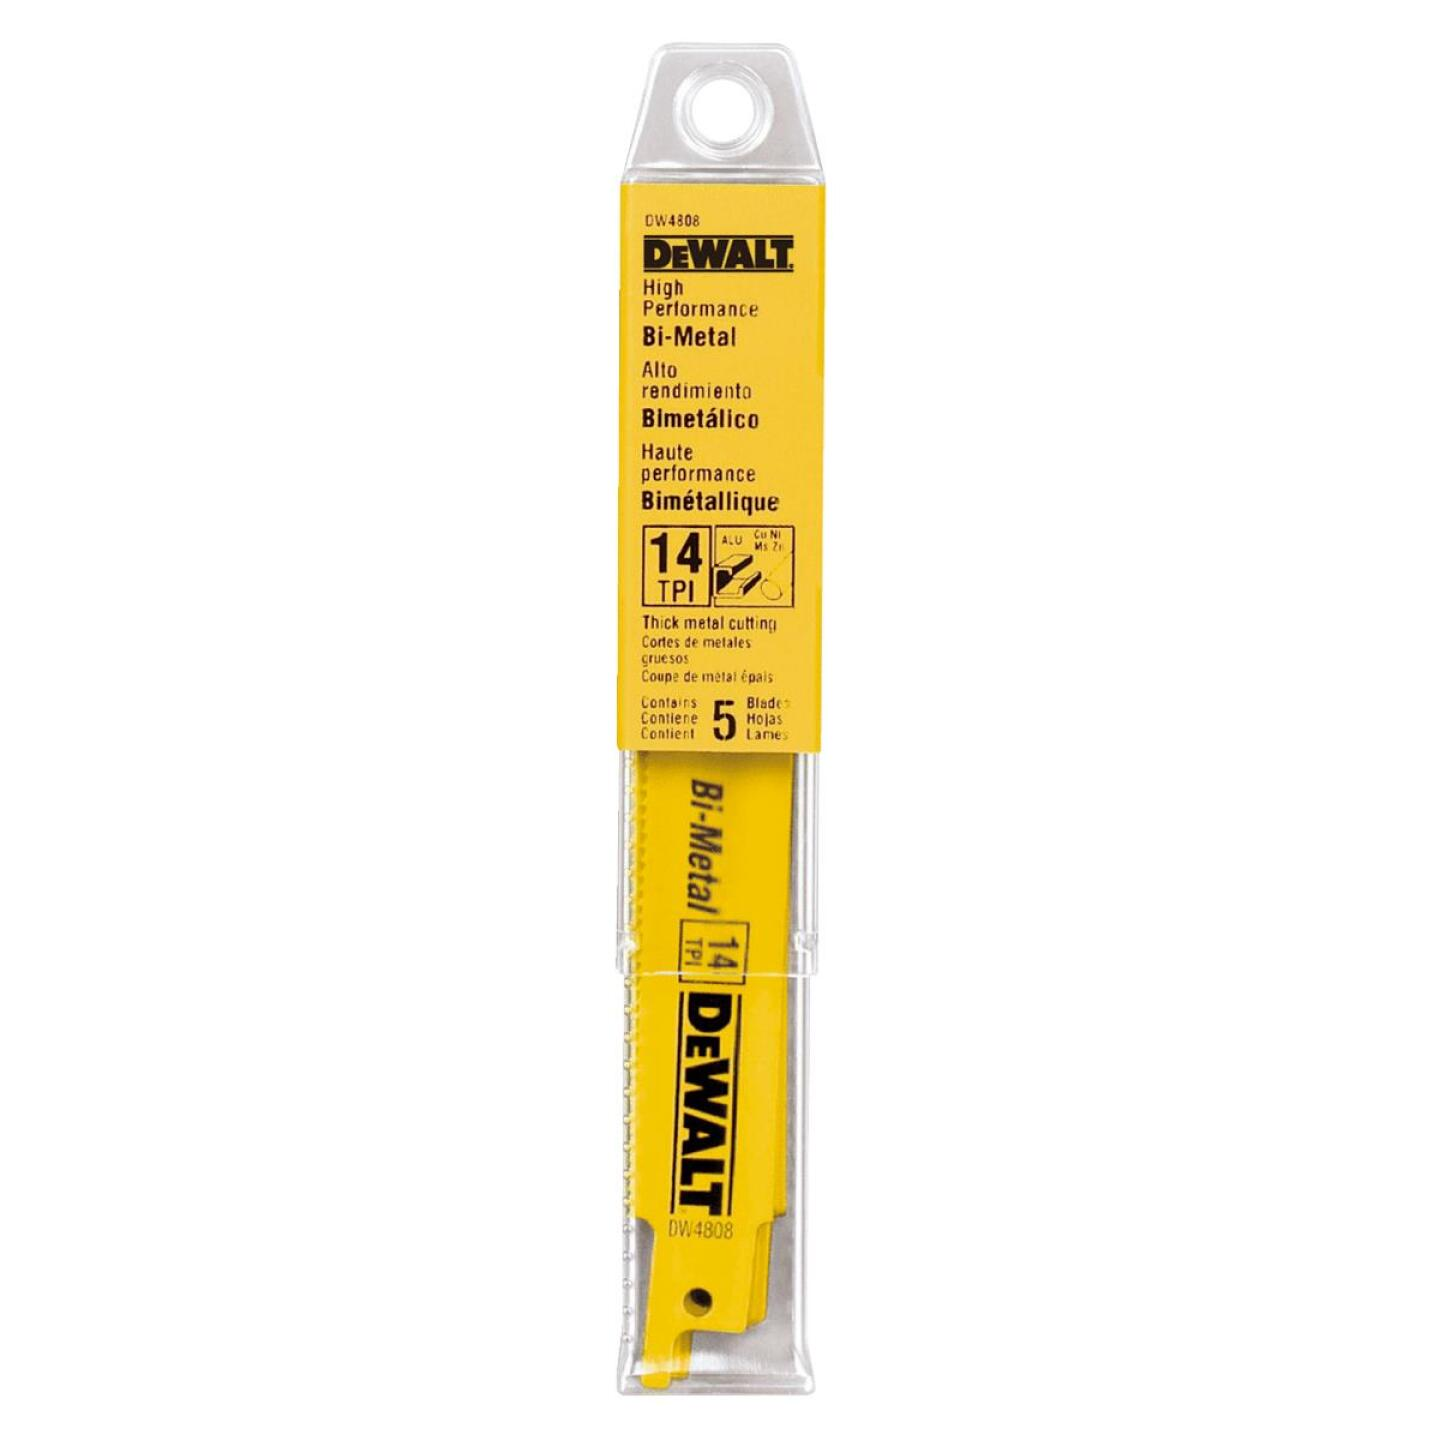 DeWalt 6 In. 14 TPI Thick Metal Reciprocating Saw Blade (5-Pack) Image 2